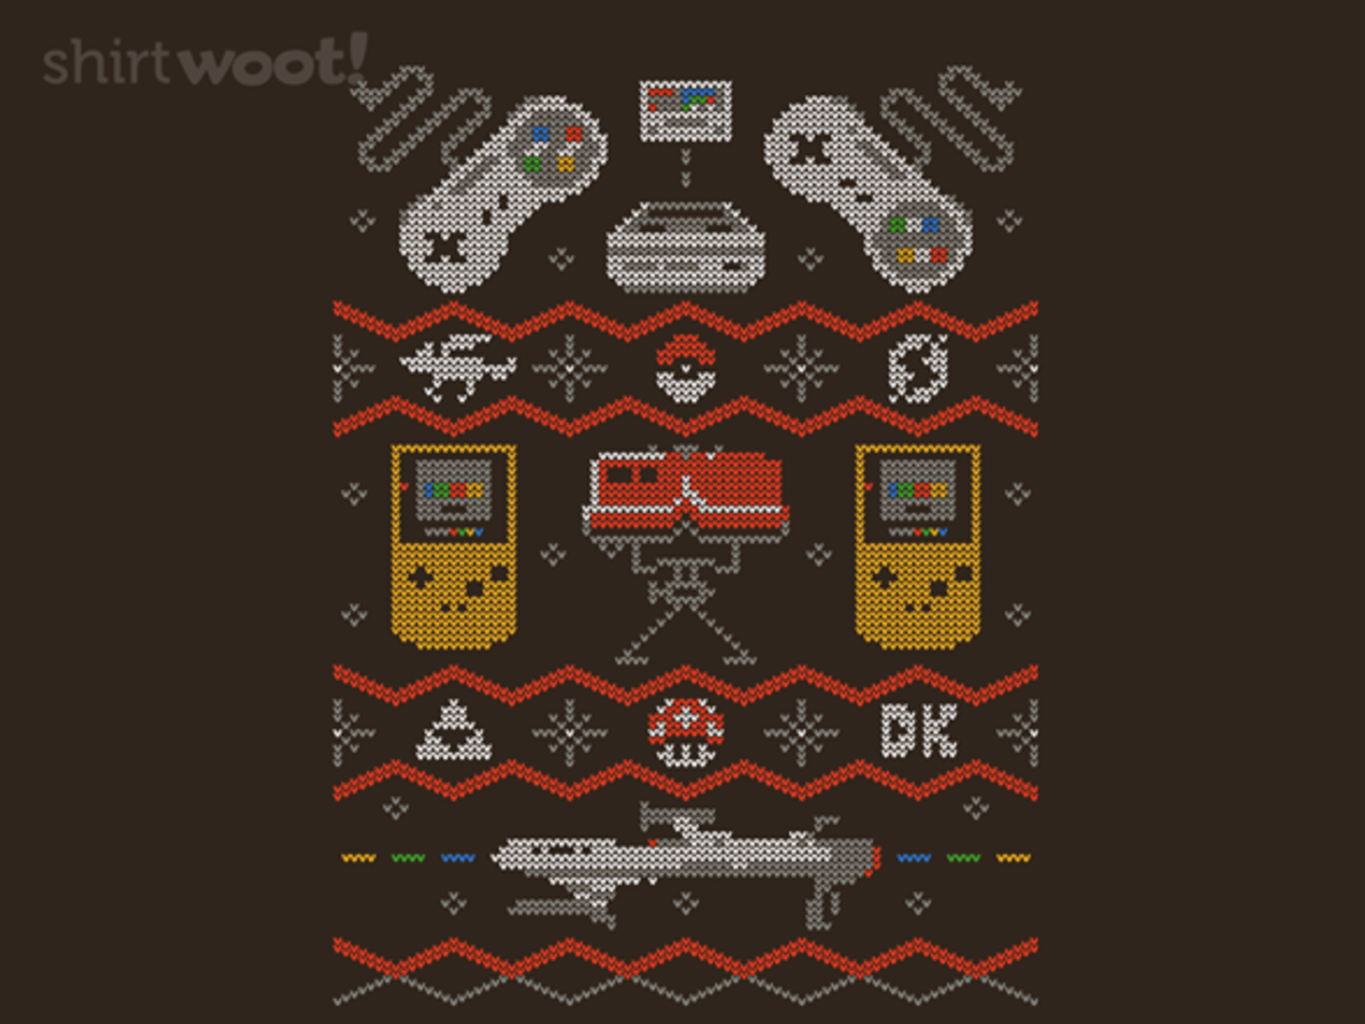 Woot!: Super Ugly Gaming Sweater